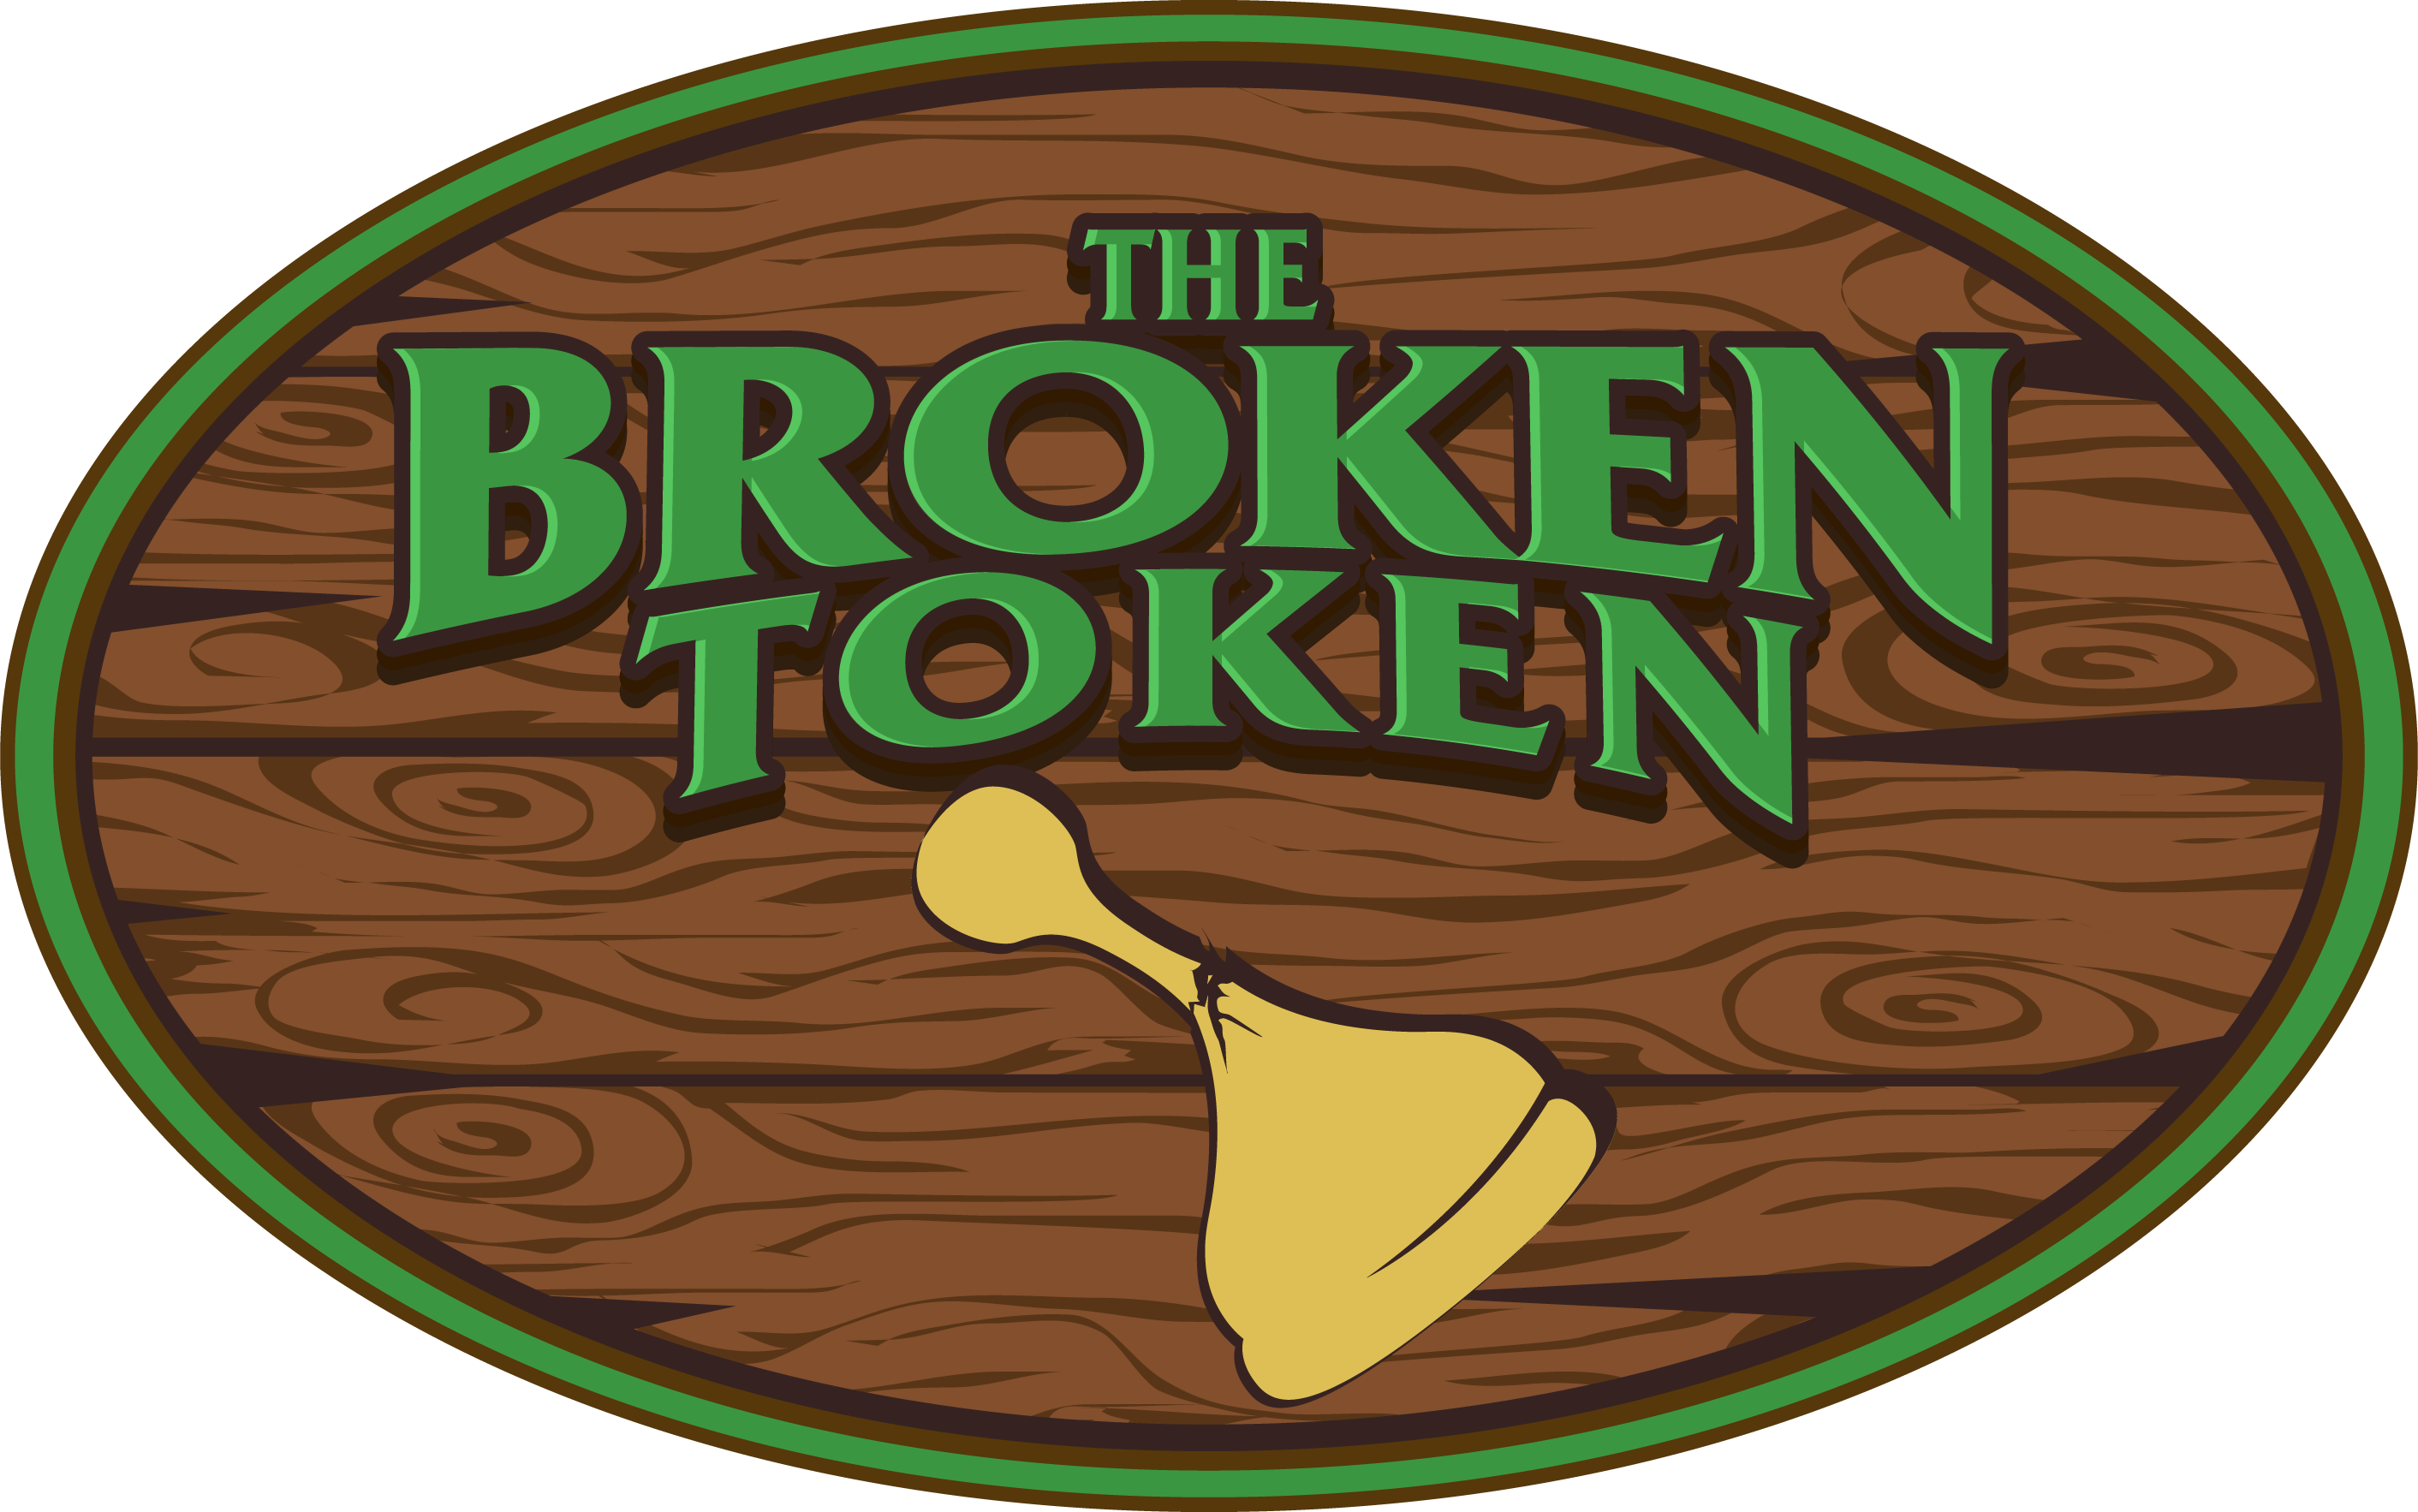 The Broken Token